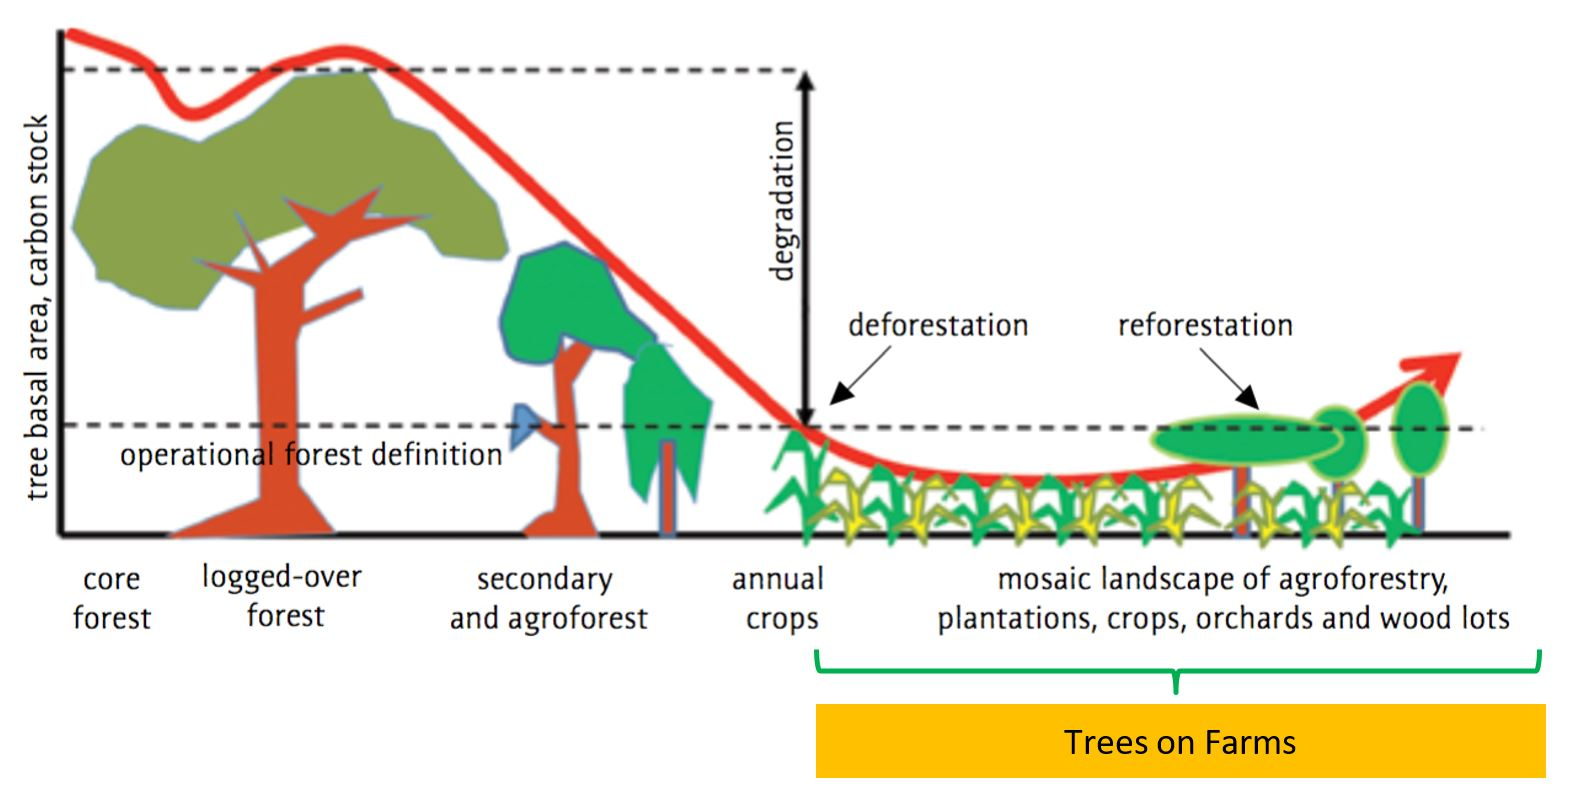 trees on farms play a critical role in providing some of the services  forests provide because they maintain, and restore, high levels of  landscape